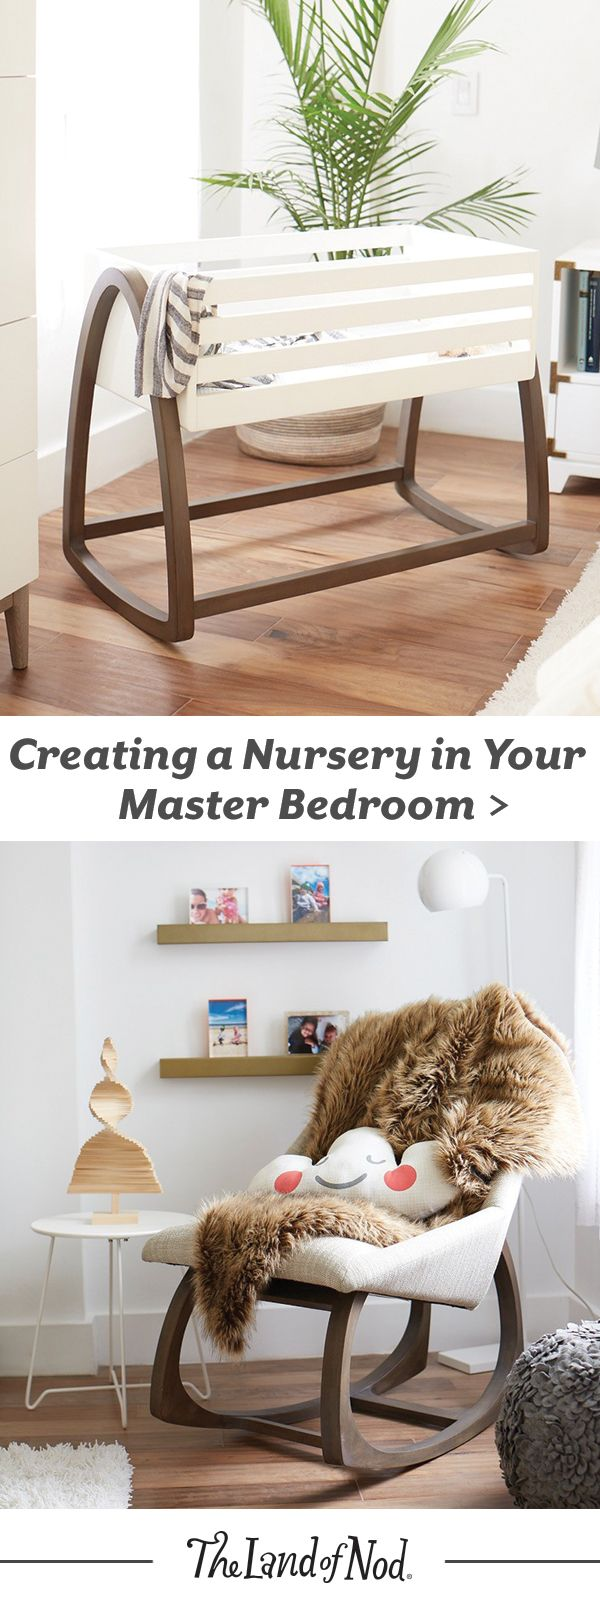 While you may have a nursery all ready for your new bundle of joy, you may find you want to keep that little guy in your master bedroom so they're a little closer in the early days. With just a few small additions, it's easy to add some functional essentials to your bedroom to make way for your newborn, without adding any additional chaos.